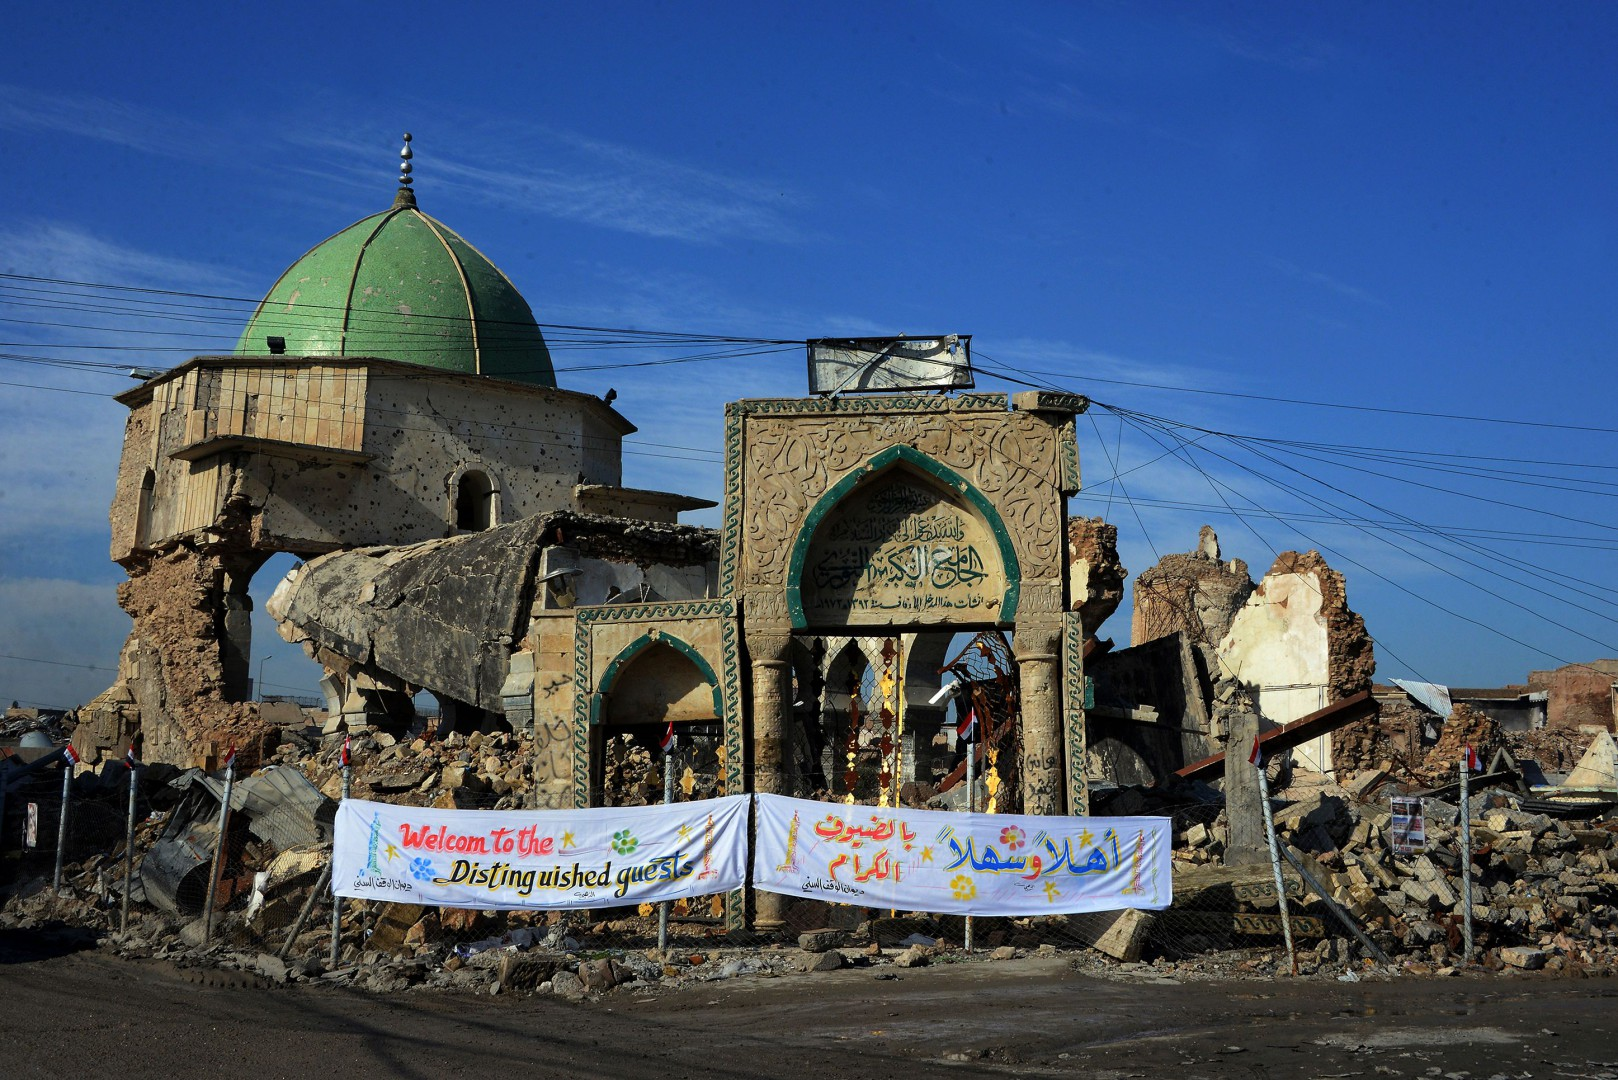 """A picture taken on December 16, 2018, shows the Great Mosque of al-Nuri and """"Al-Hadba"""" leaning minaret in Mosulís war-ravaged Old City, during the placing of the corner stone ceremony. - The famed 12th century mosque and minaret, dubbed Al-Hadba or """"the hunchback,"""" were where IS chief Abu Bakr al-Baghdadi made his only public appearance to declare a self-styled """"caliphate"""" after sweeping into Mosul in 2014. The structures were ravaged three years later in the final, most brutal stages of the months-long fight against IS. (Photo by Zaid AL-OBEIDI / AFP)"""